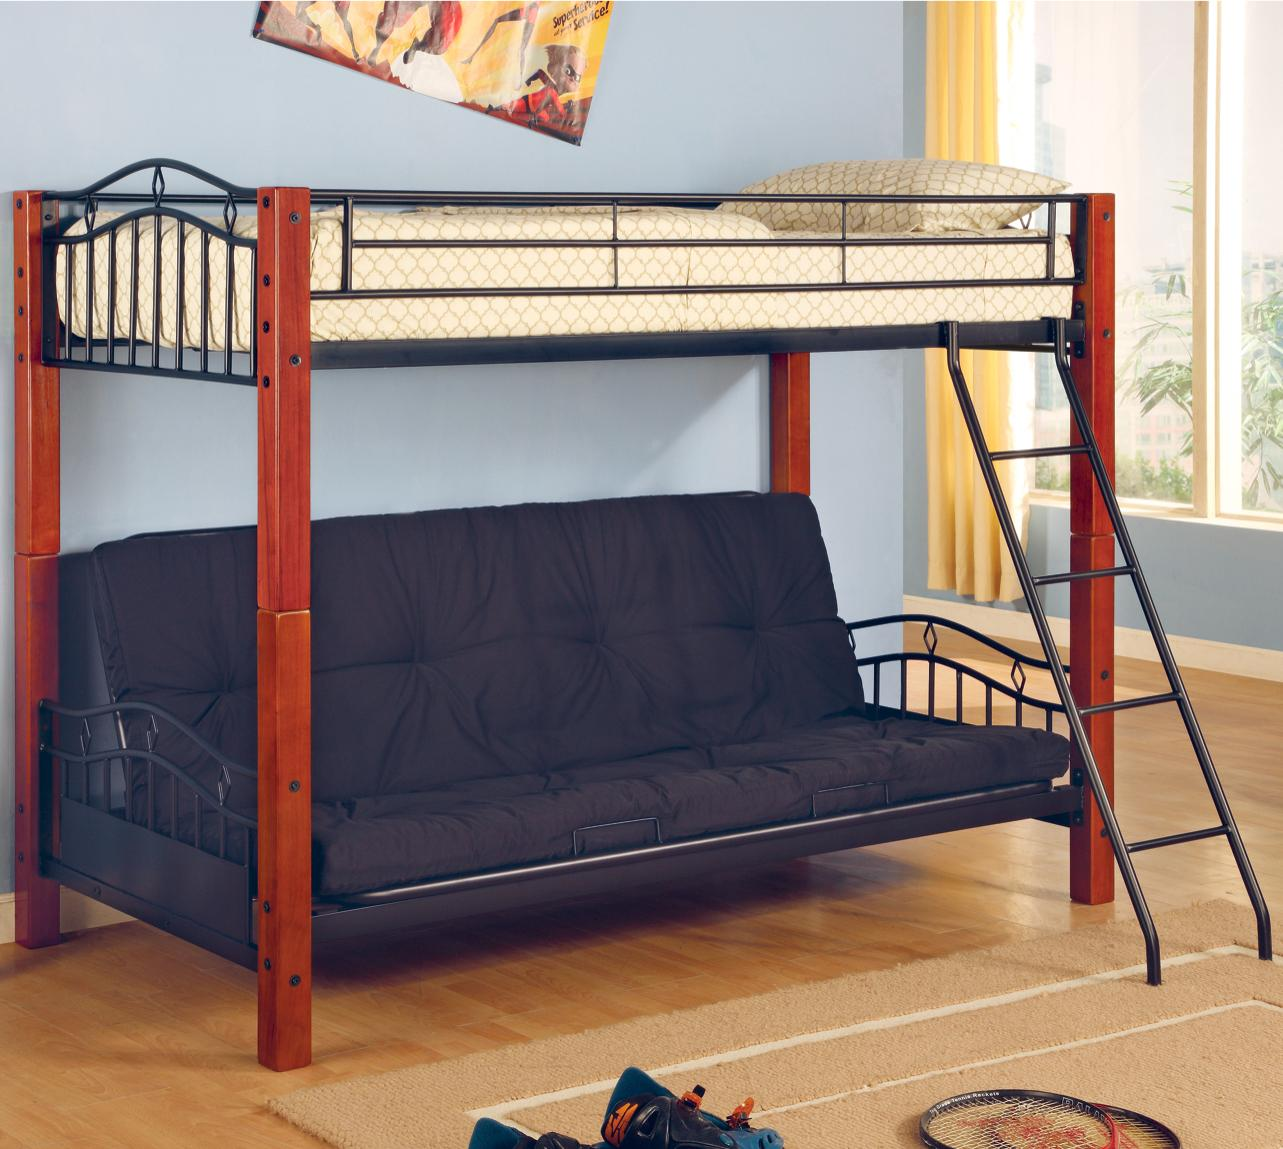 celina twin futon bunk bed celina twin futon bunk bed  u2014 coco furniture gallery furnishing dreams  rh   shopcocofurniture